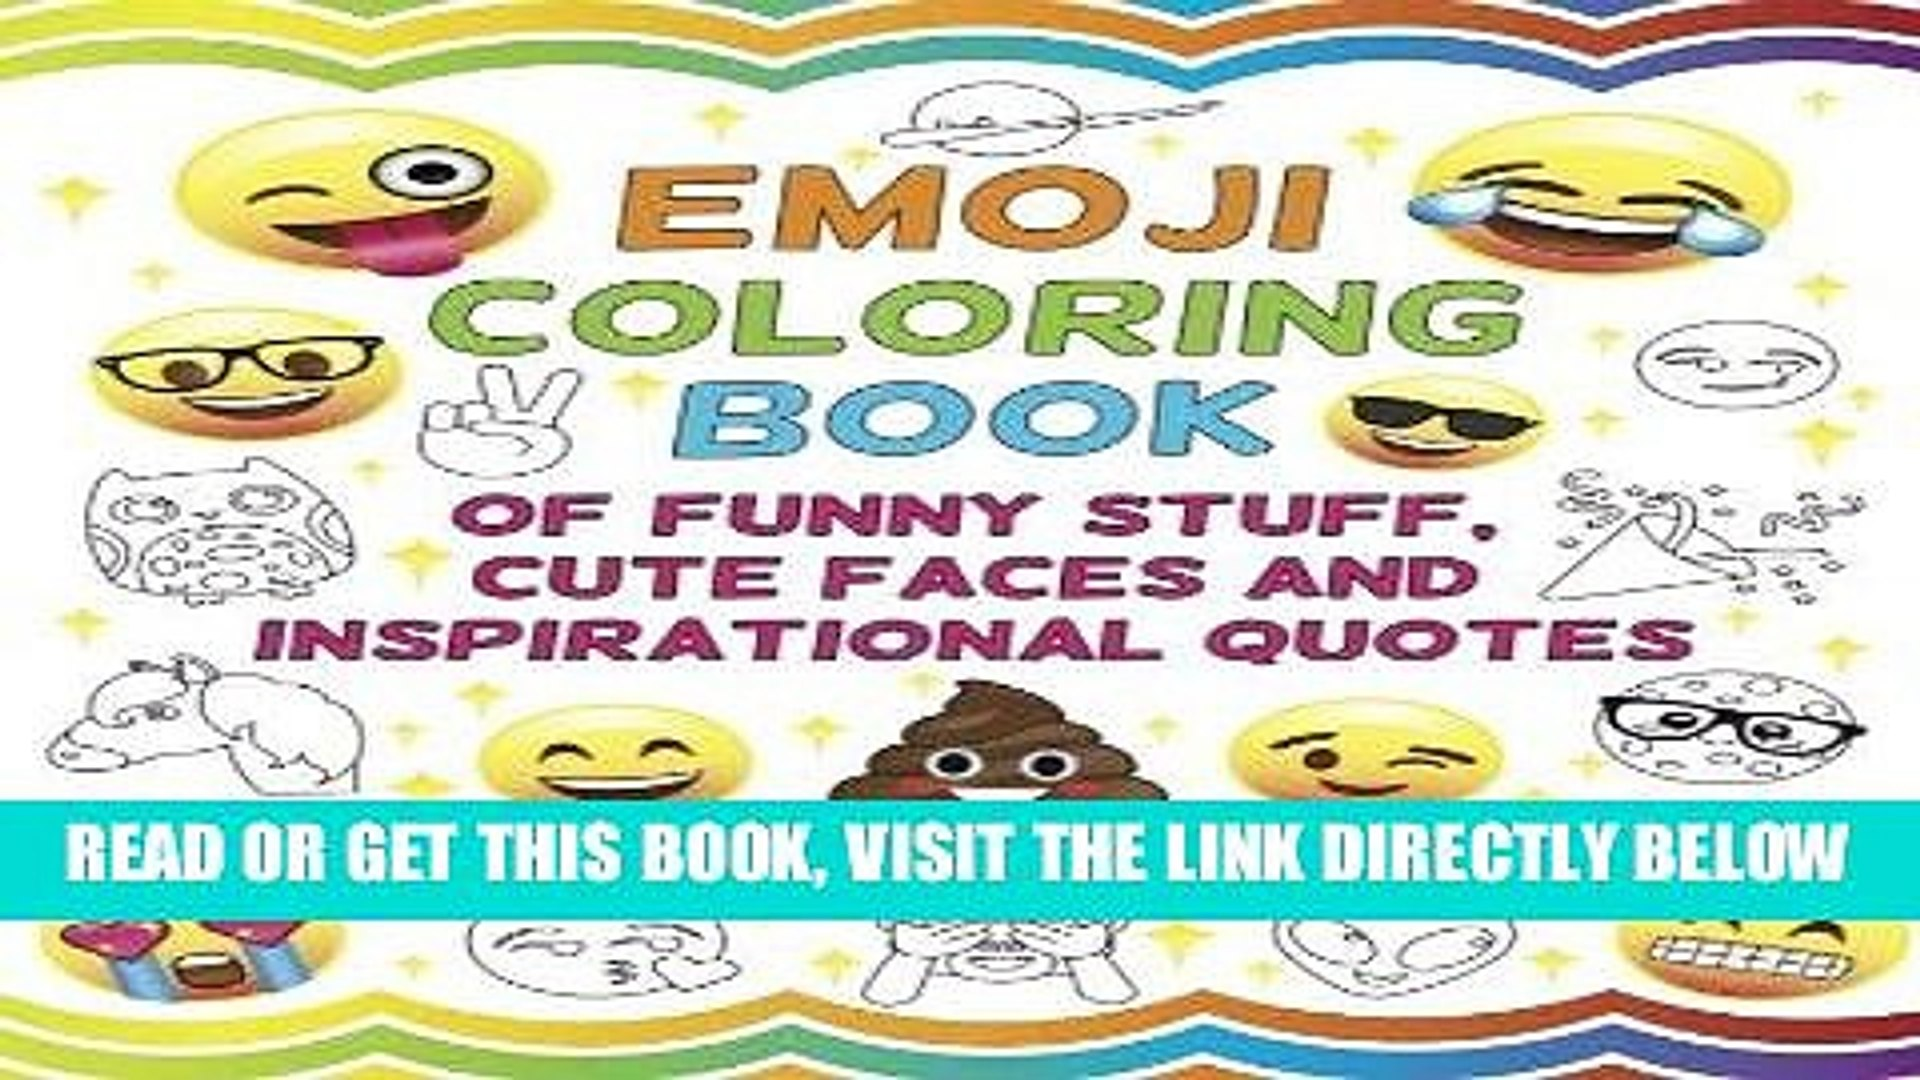 Free Ebook Emoji Coloring Book Of Funny Stuff Cute Faces And Inspirational Quotes 30 Awesome